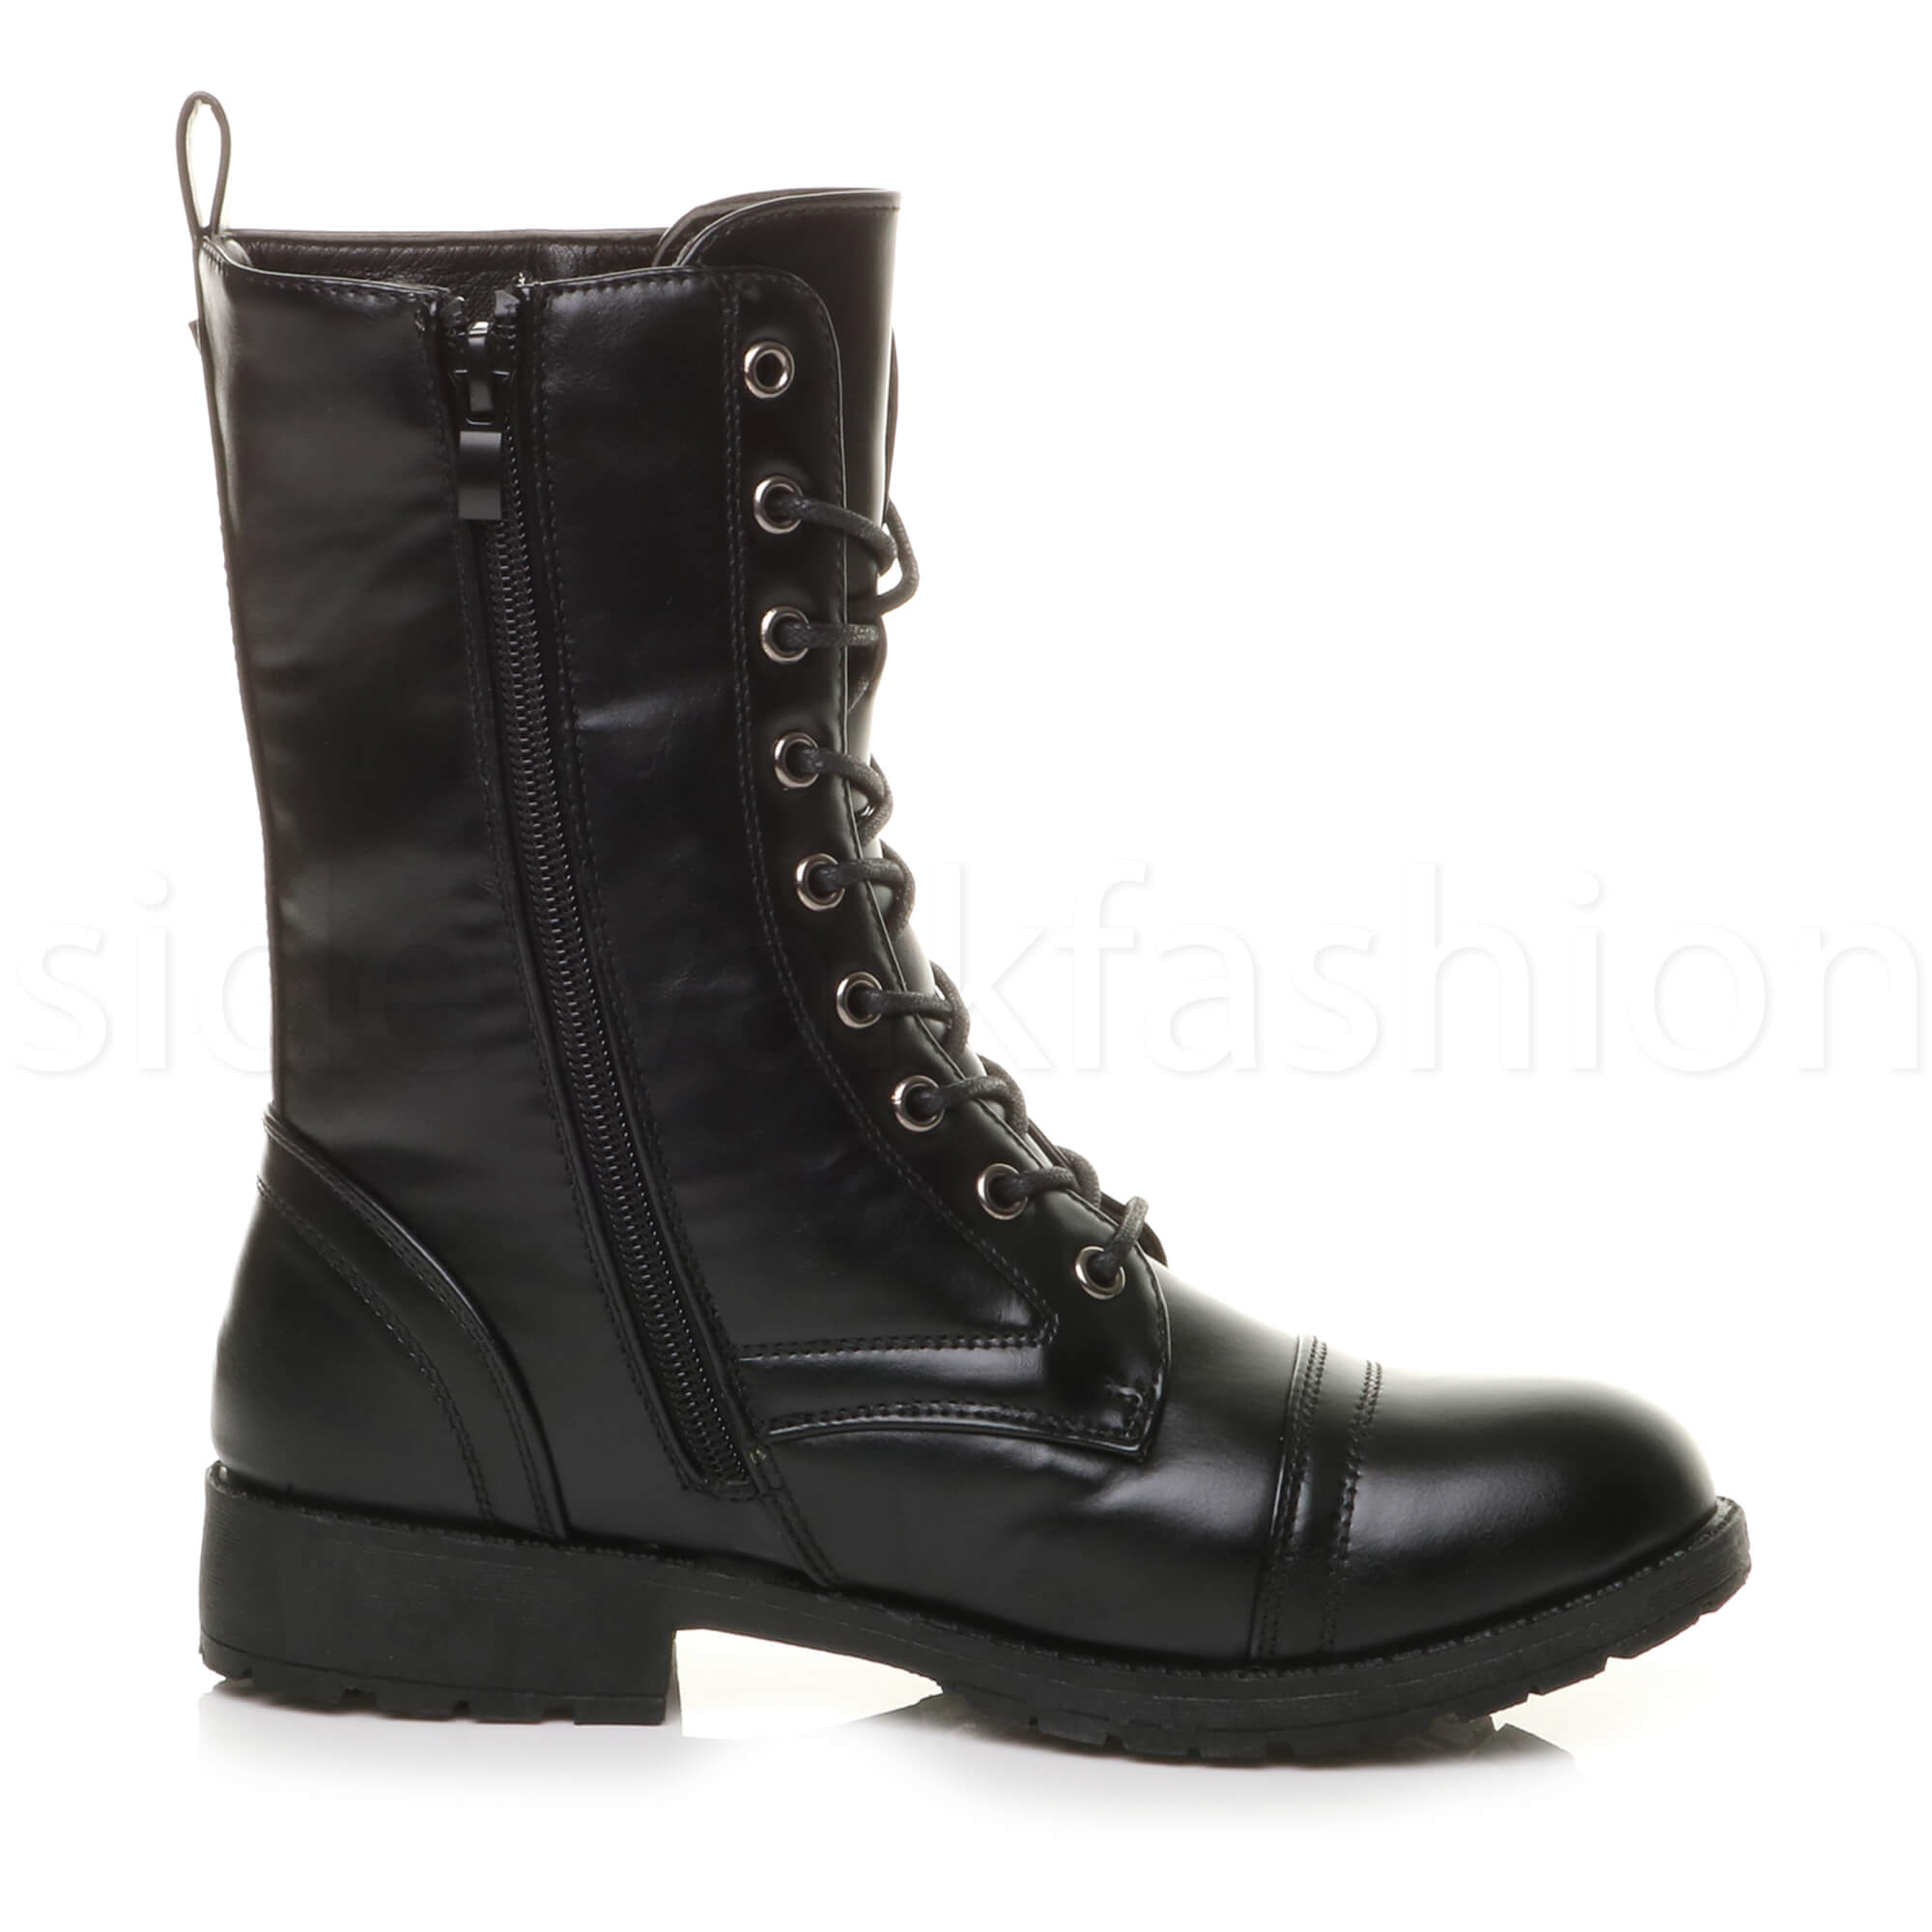 Womens-ladies-low-heel-flat-lace-up-zip-combat-biker-military-ankle-boots-size thumbnail 12